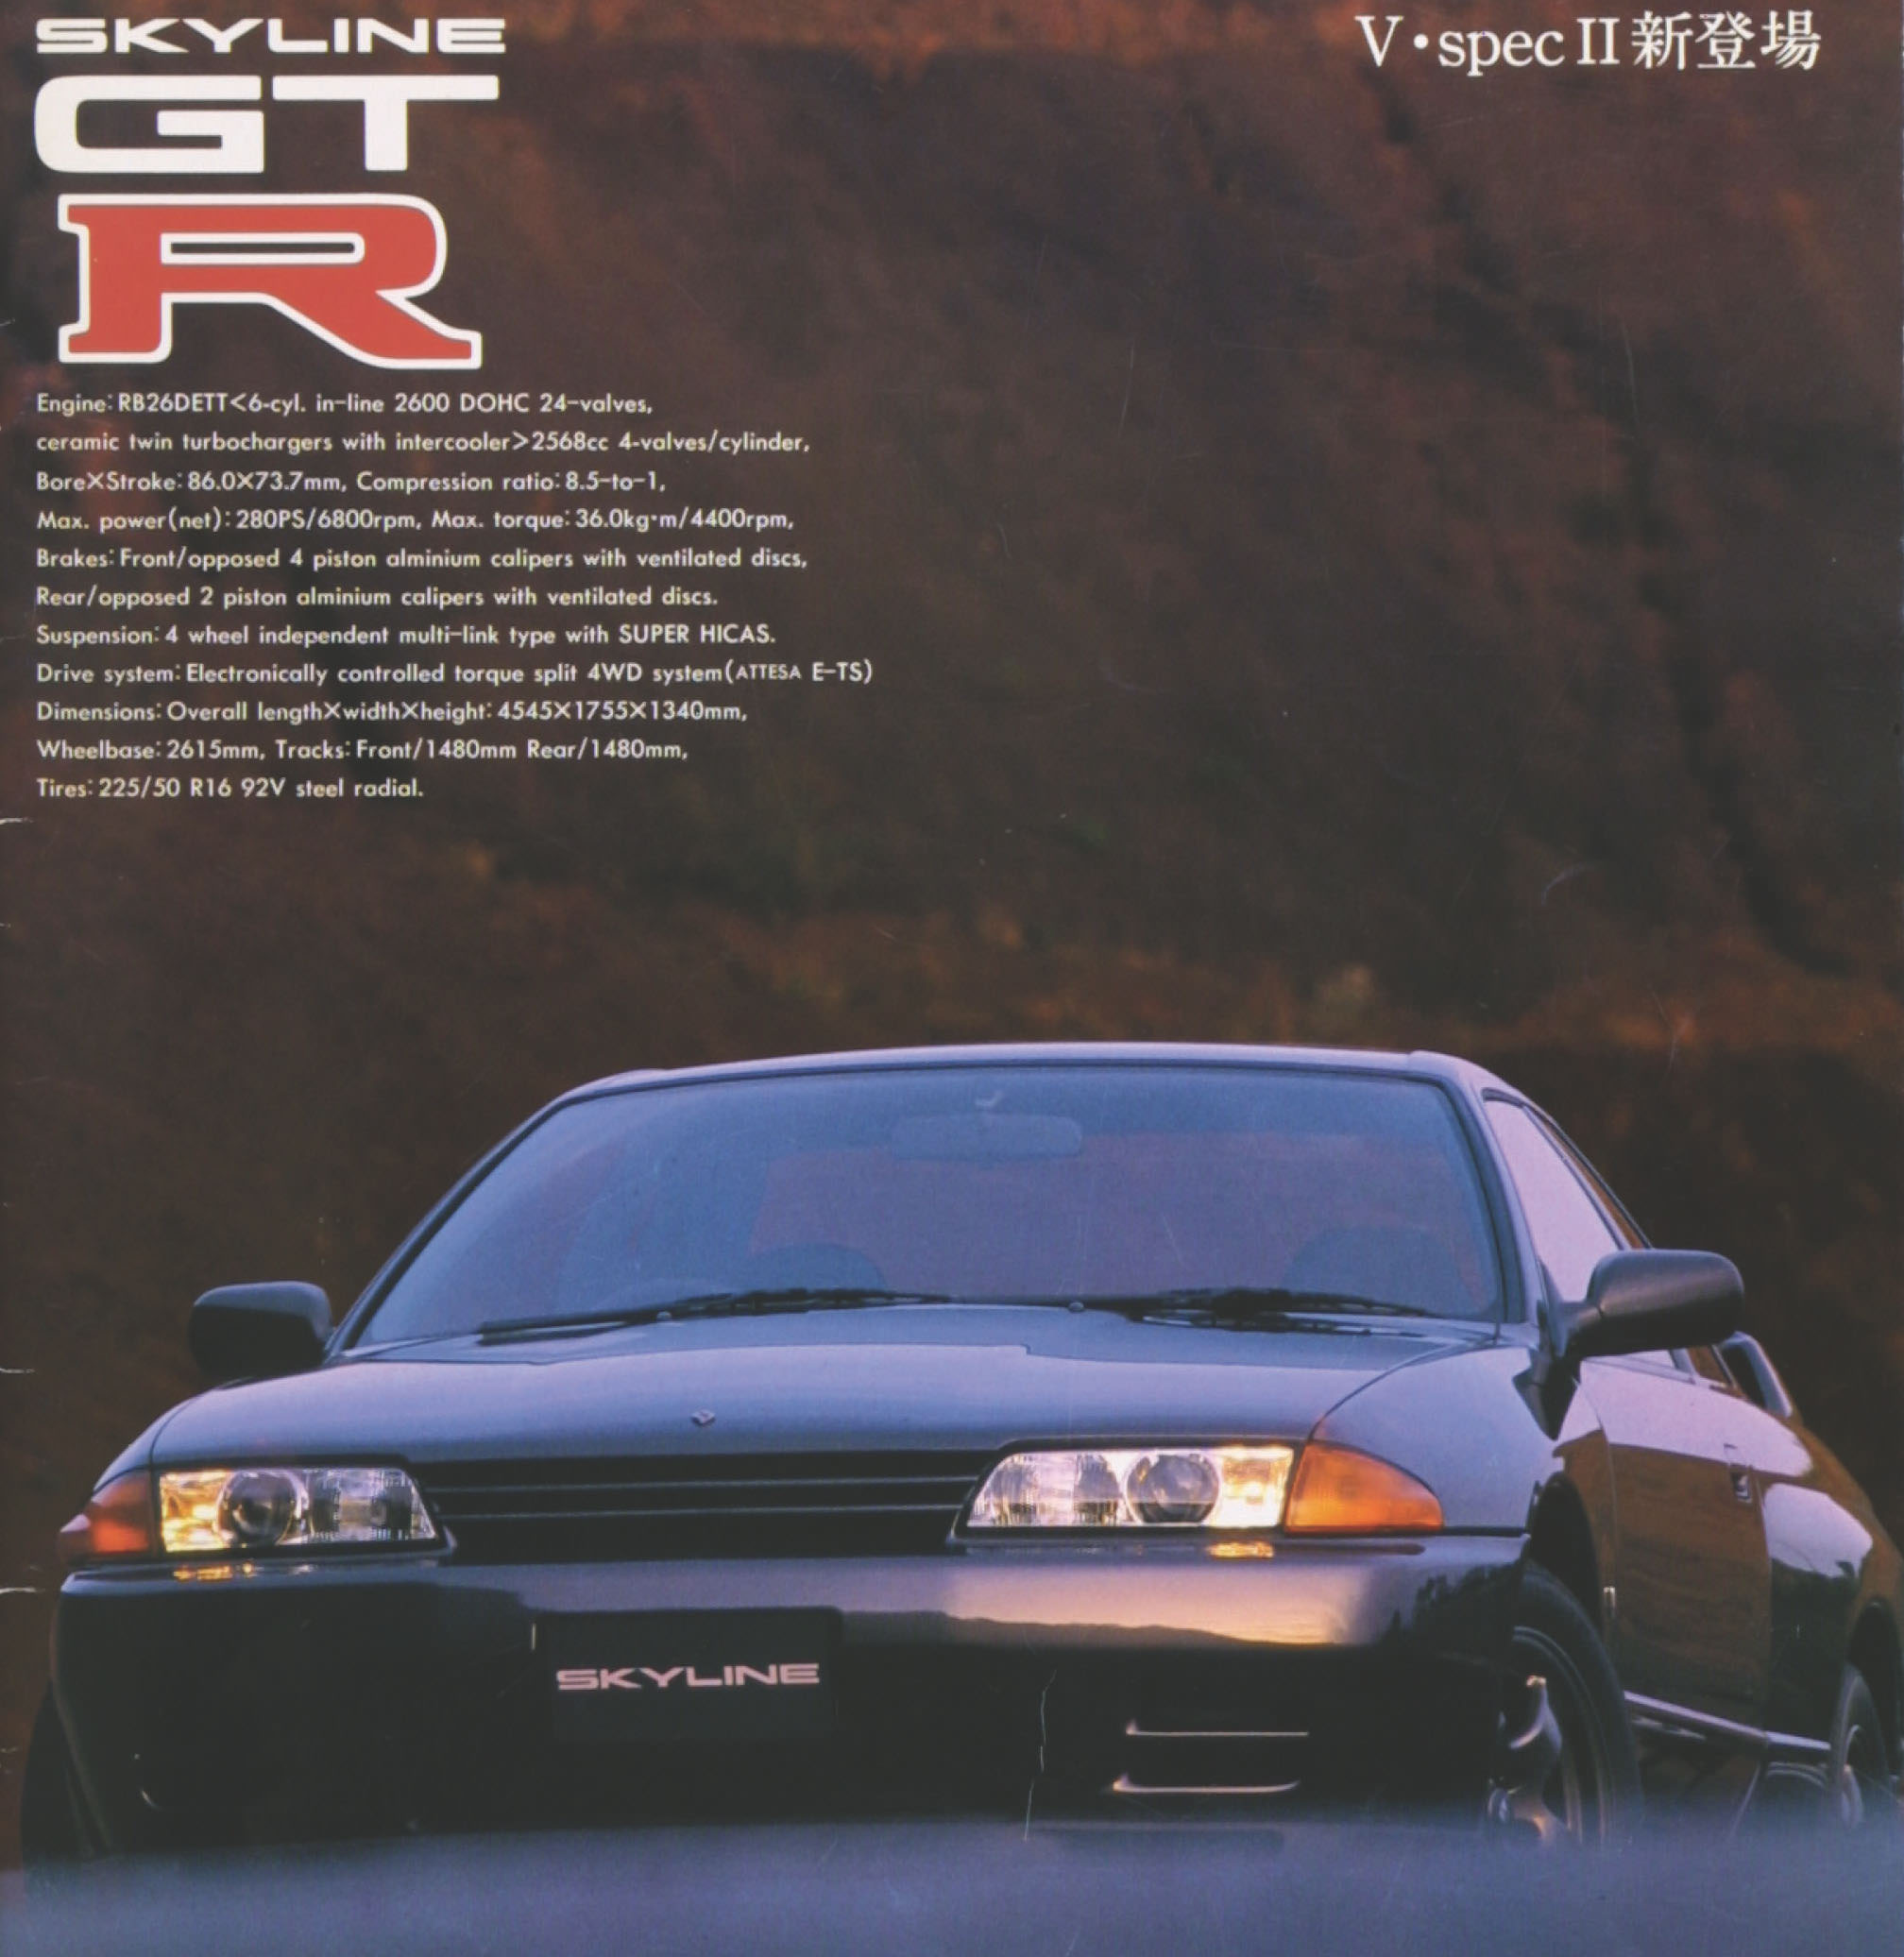 A Brief History Of The Nissan Skyline And GT-R